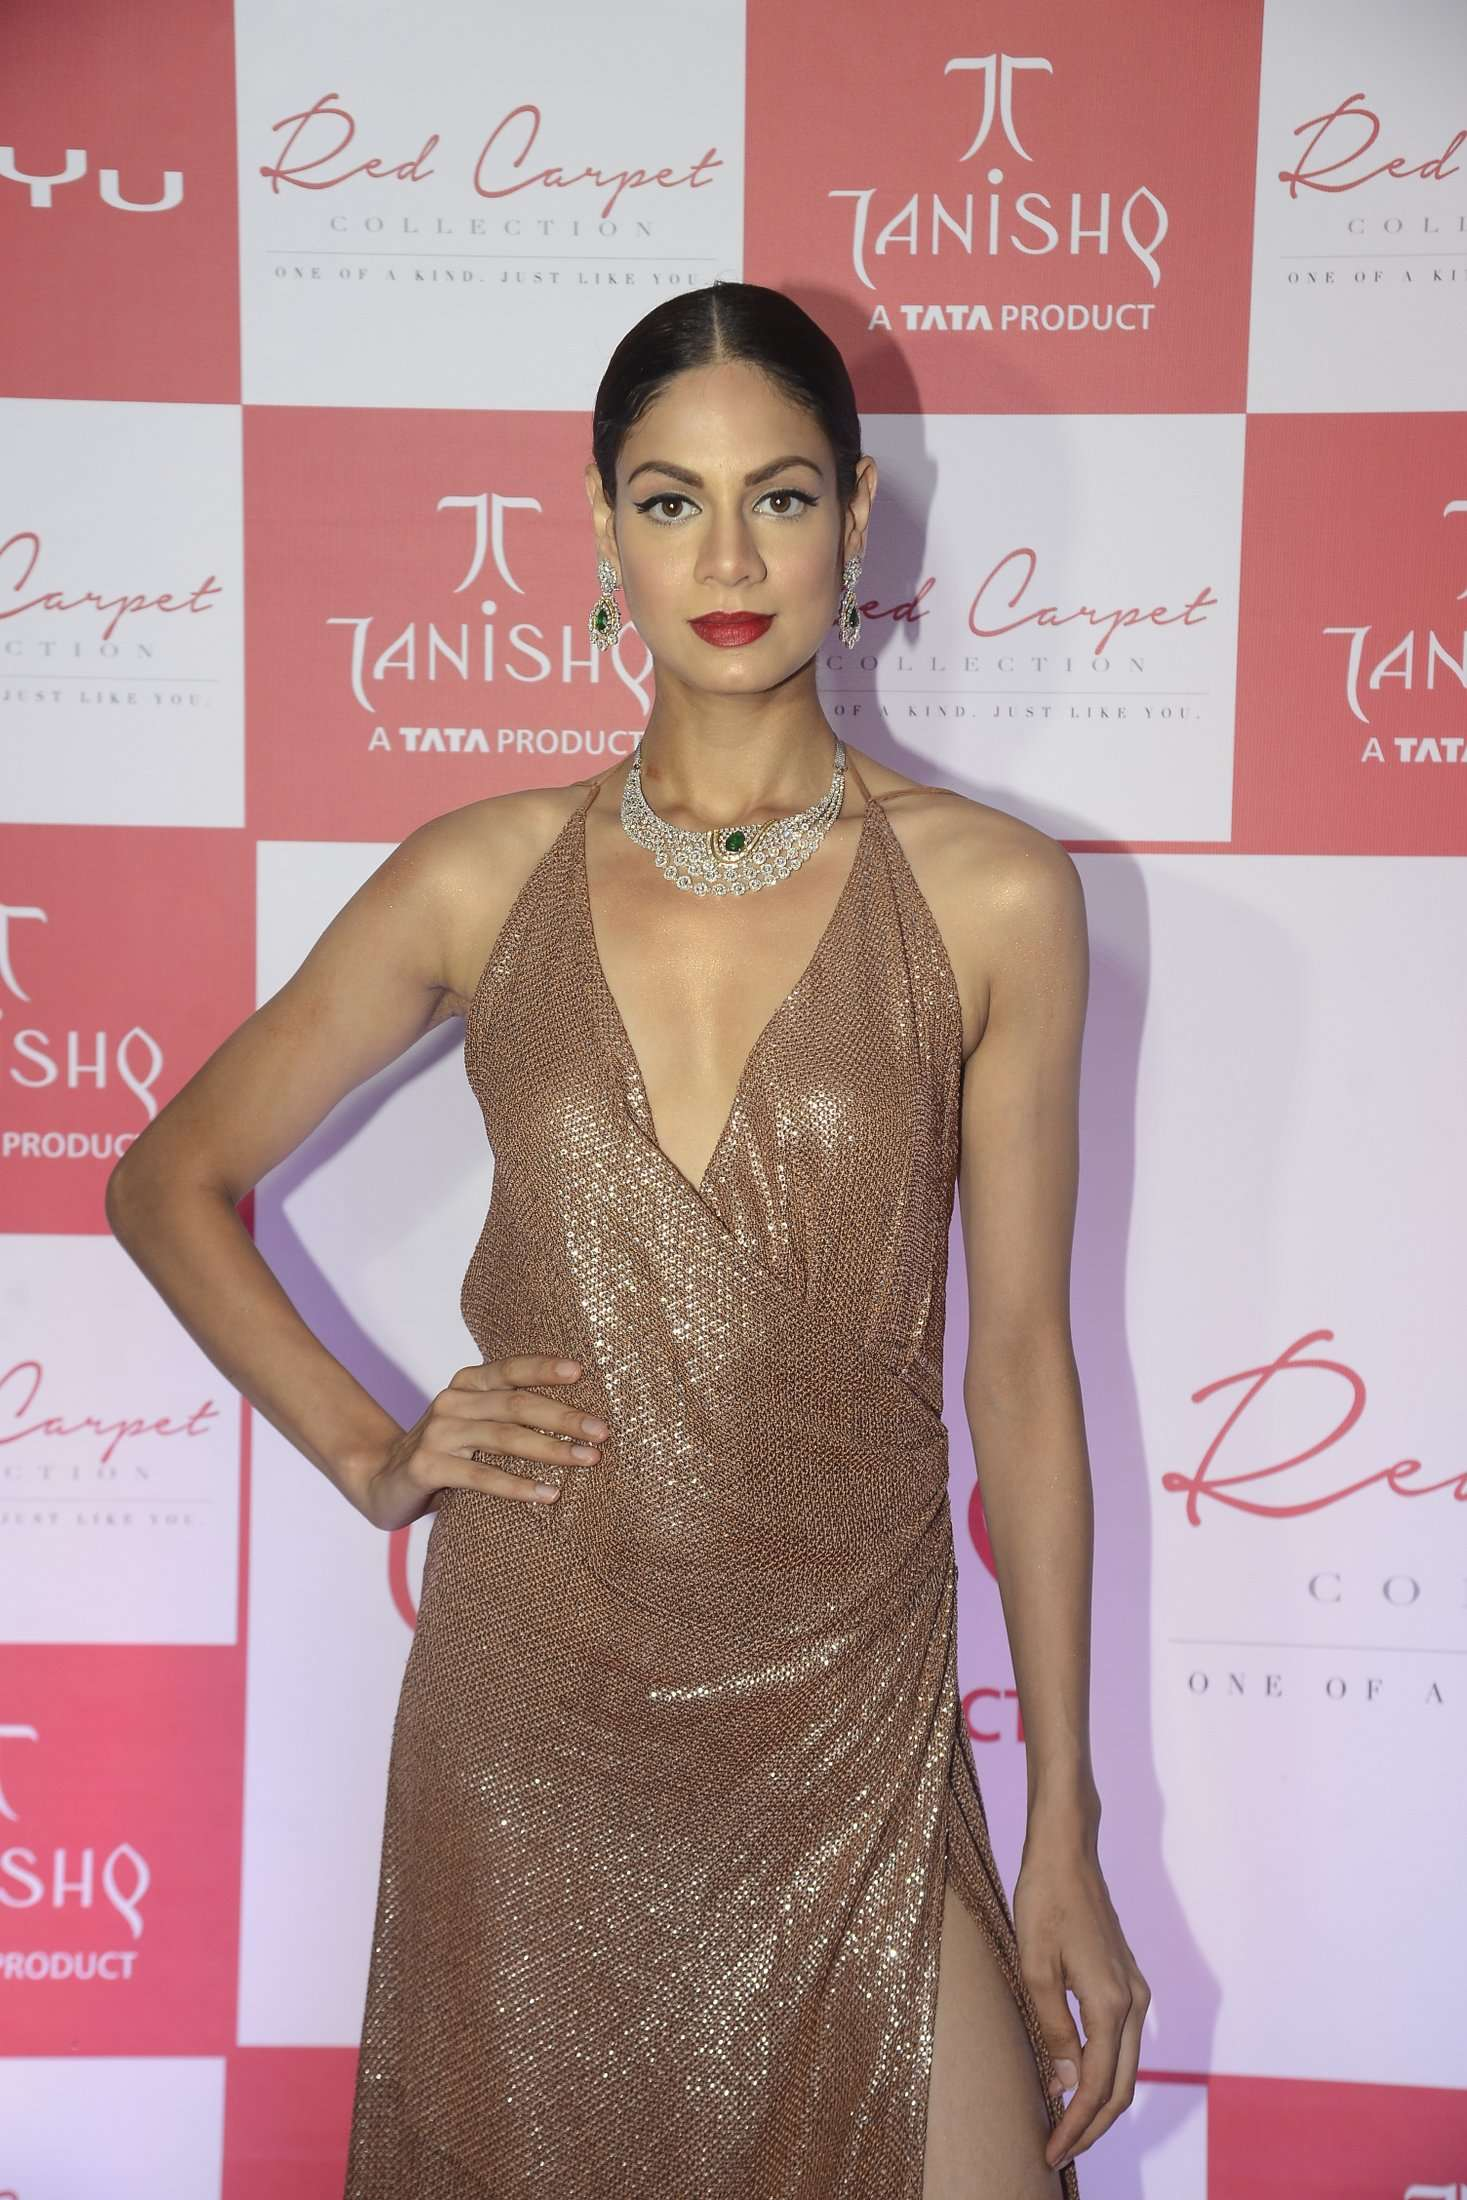 Tanishq's Red Carpet Collection Launch